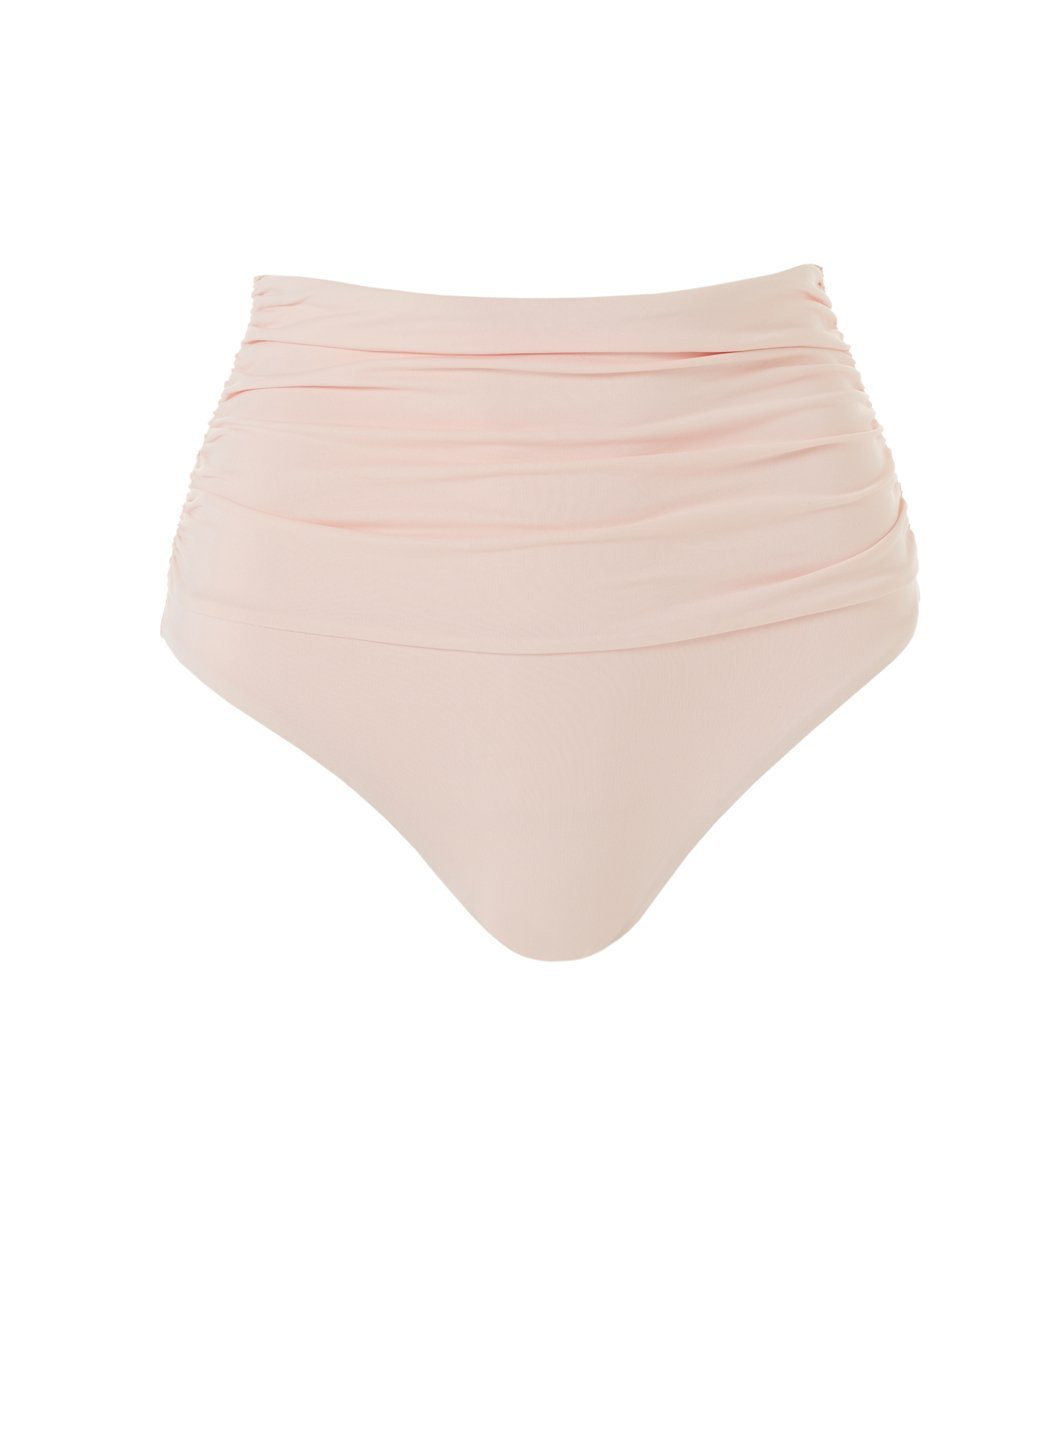 caribe-blush-bikini-bottom - Cut-Out